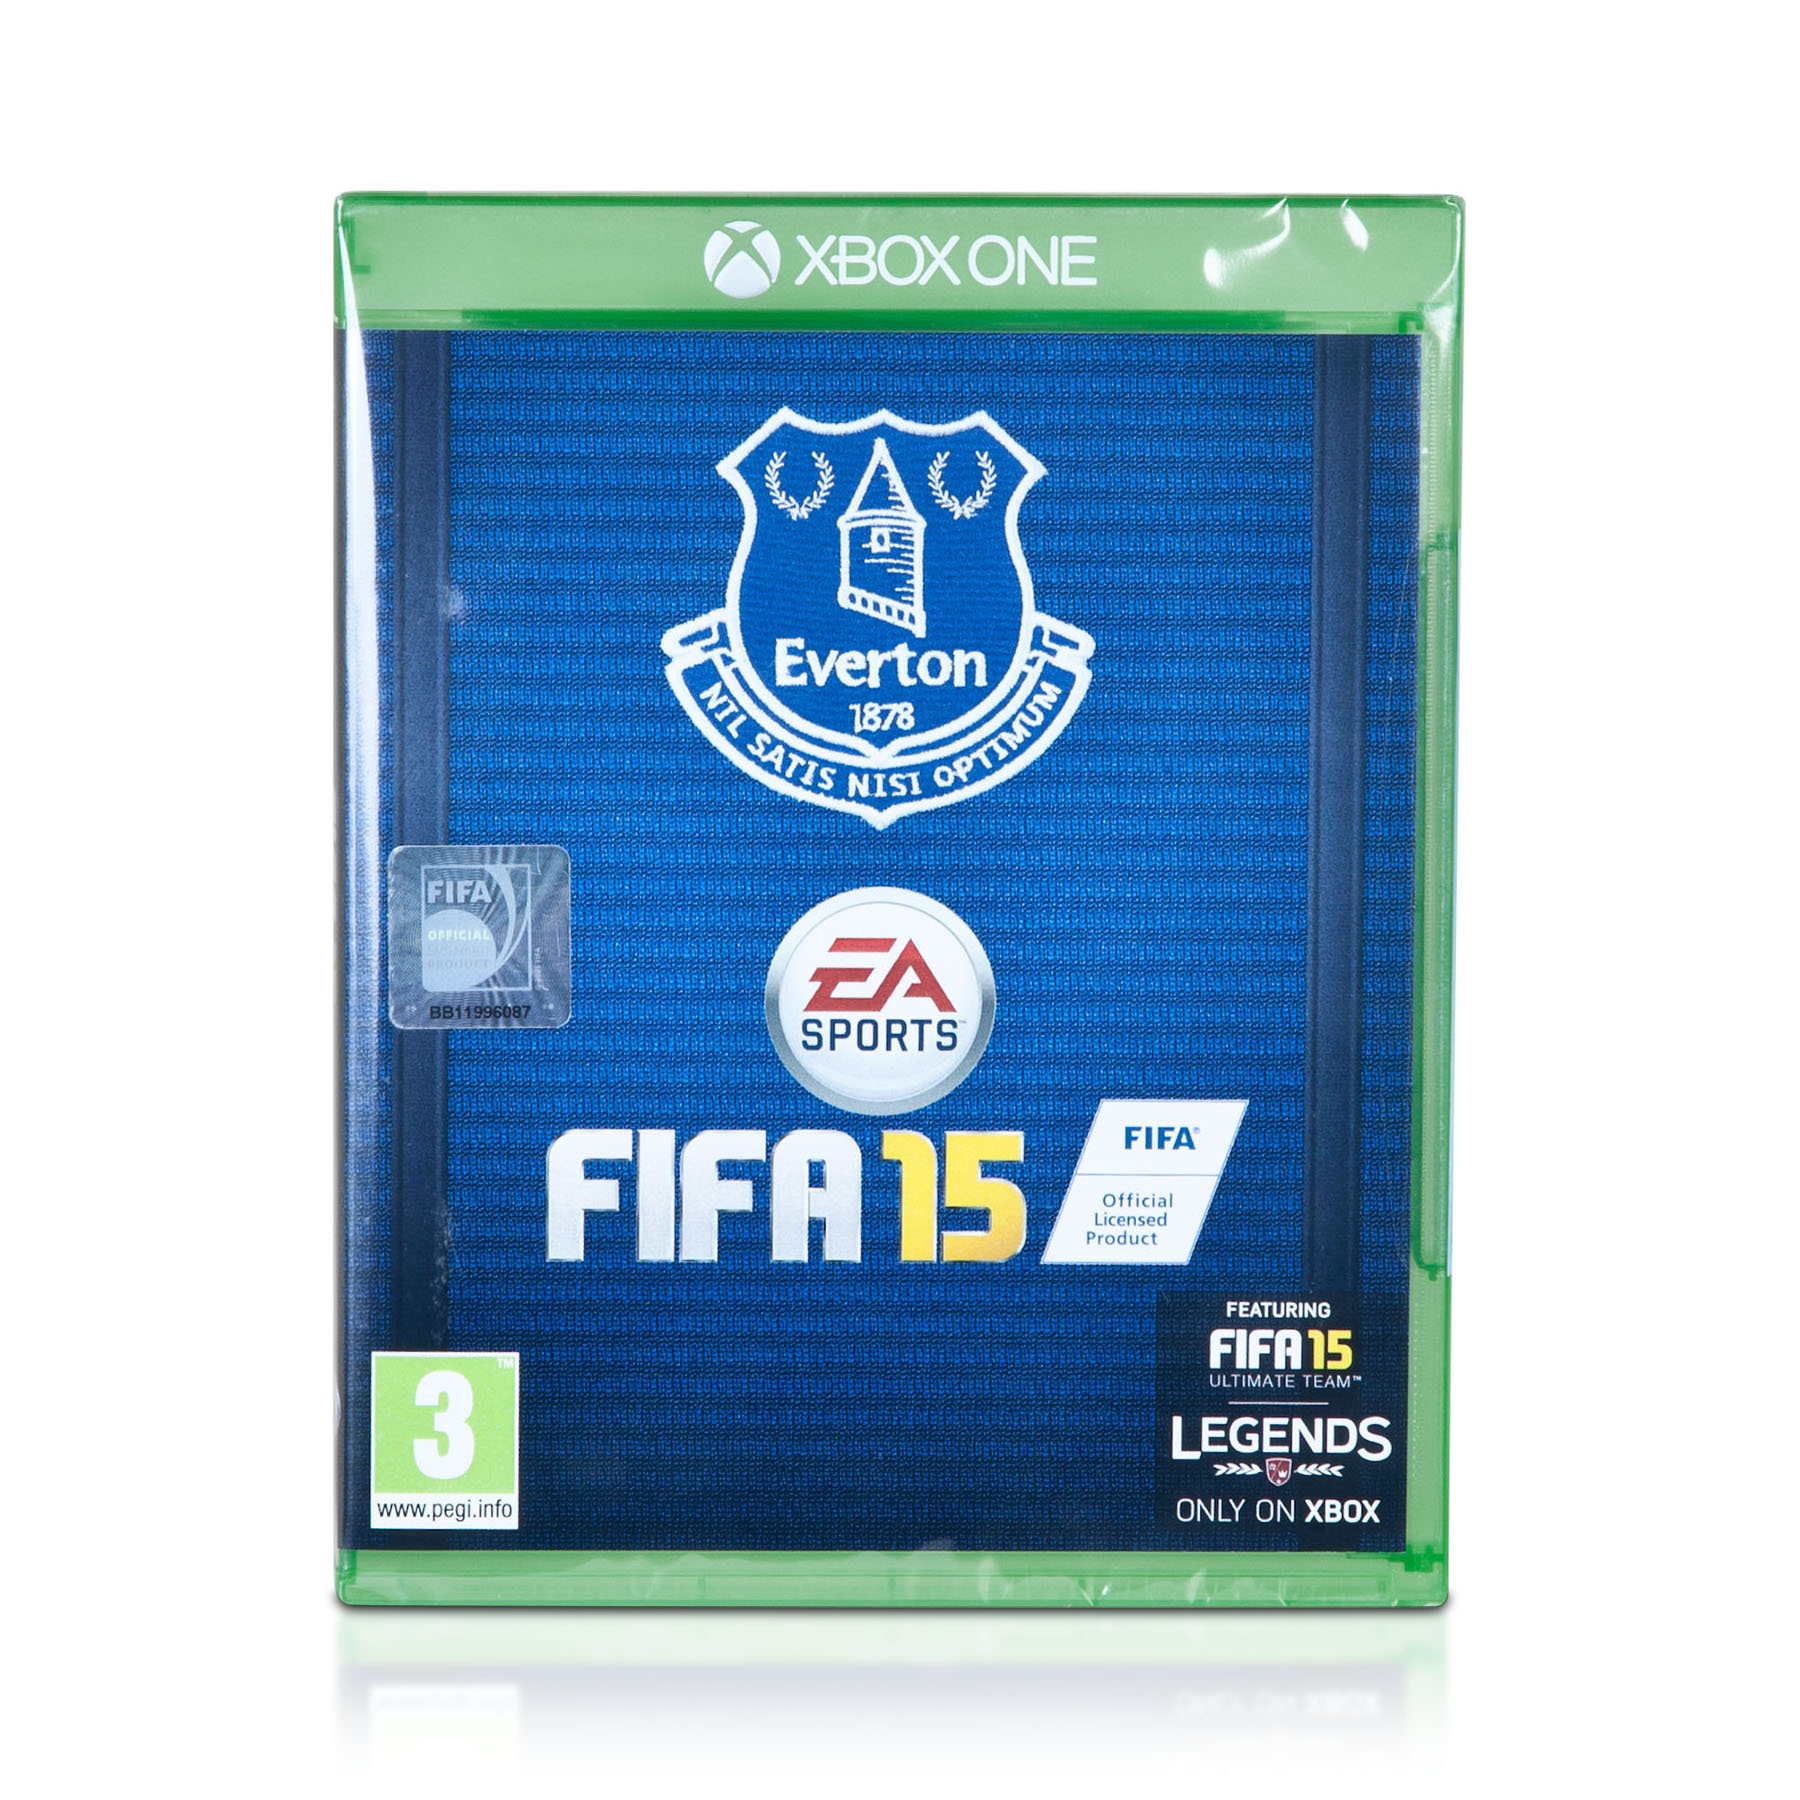 Everton Fifa 15 Xbox 1 - Exclusive Cover